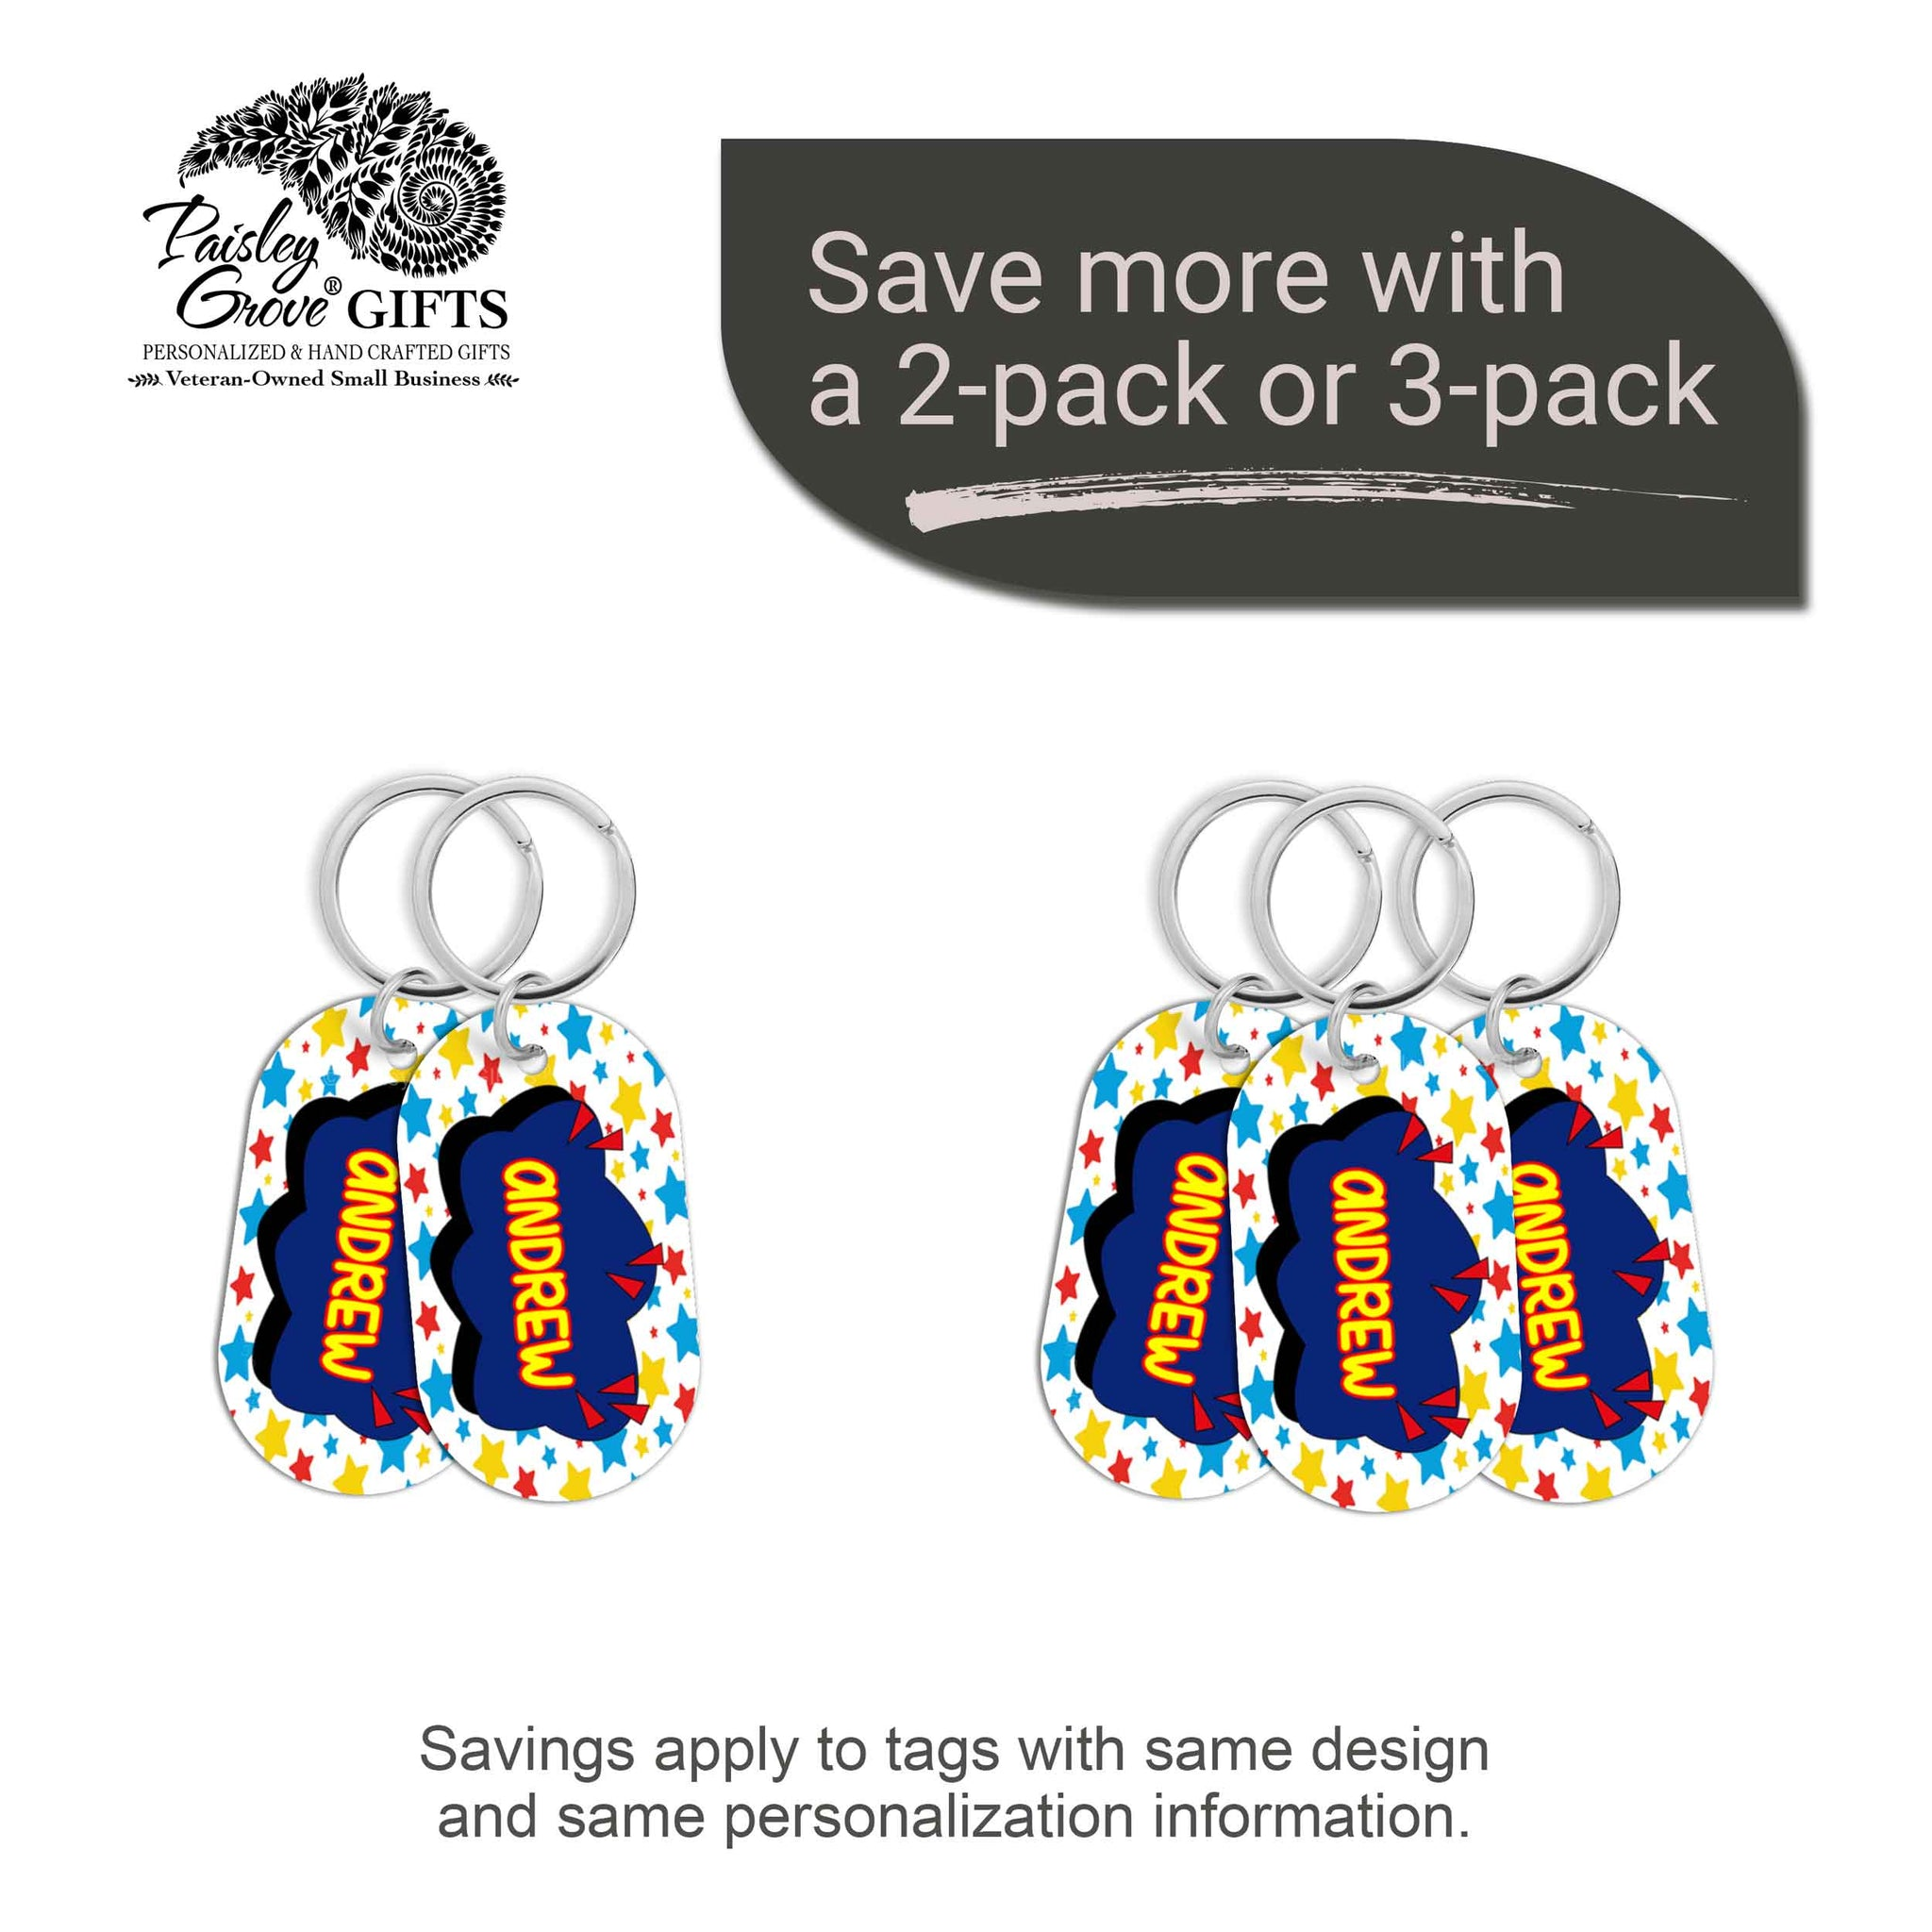 CopyrightPaisleyGroveGIFTS S070a3 Personalized bag ID tags for luggage or bags 2 or 3 pack option savings